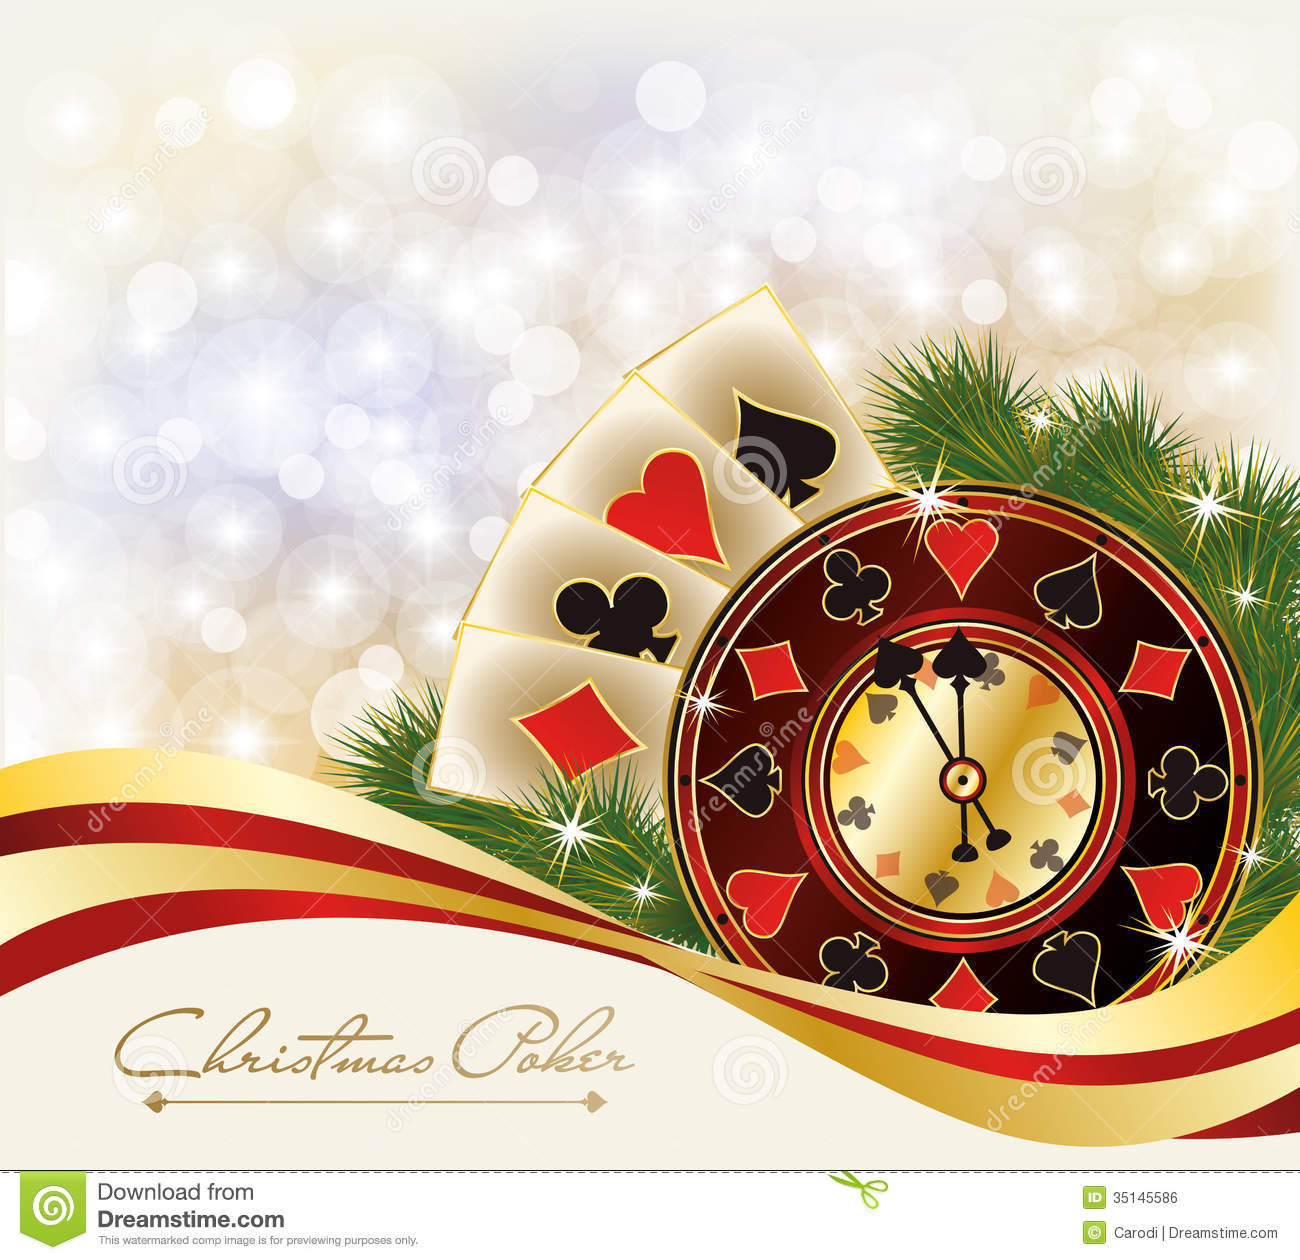 Club Gold casino aprender a jugar poker-989521